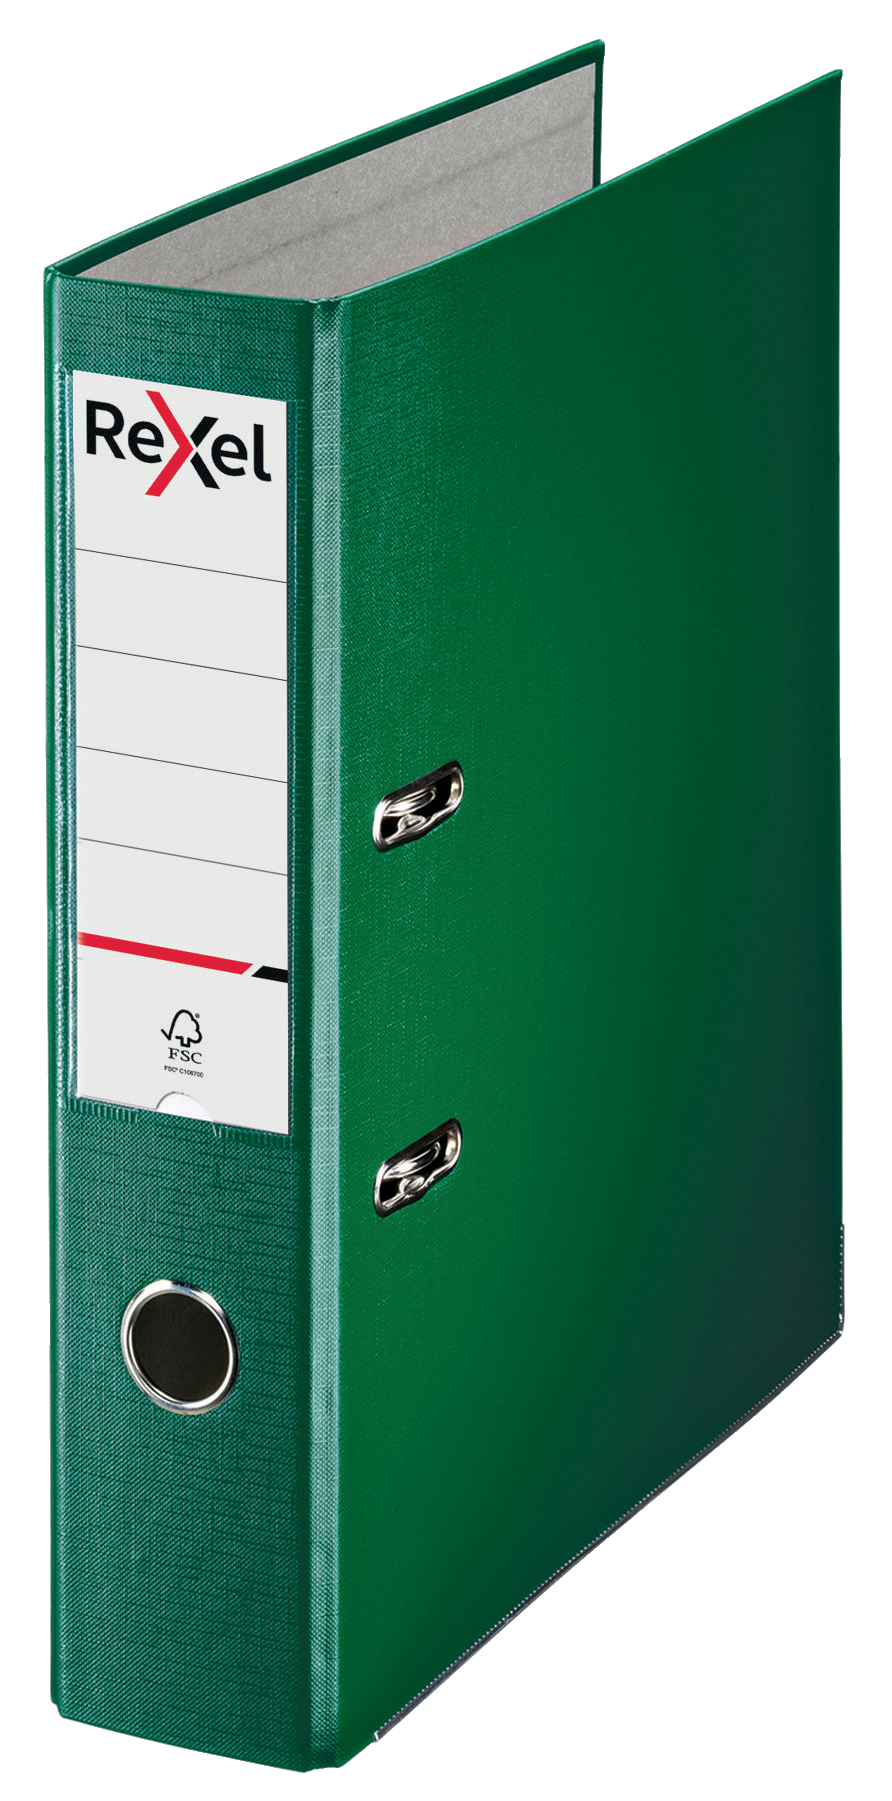 Lever Arch Files Rexel Lever Arch File ECO Polypropylene A4 75mm Spine Width Green (Pack 20)